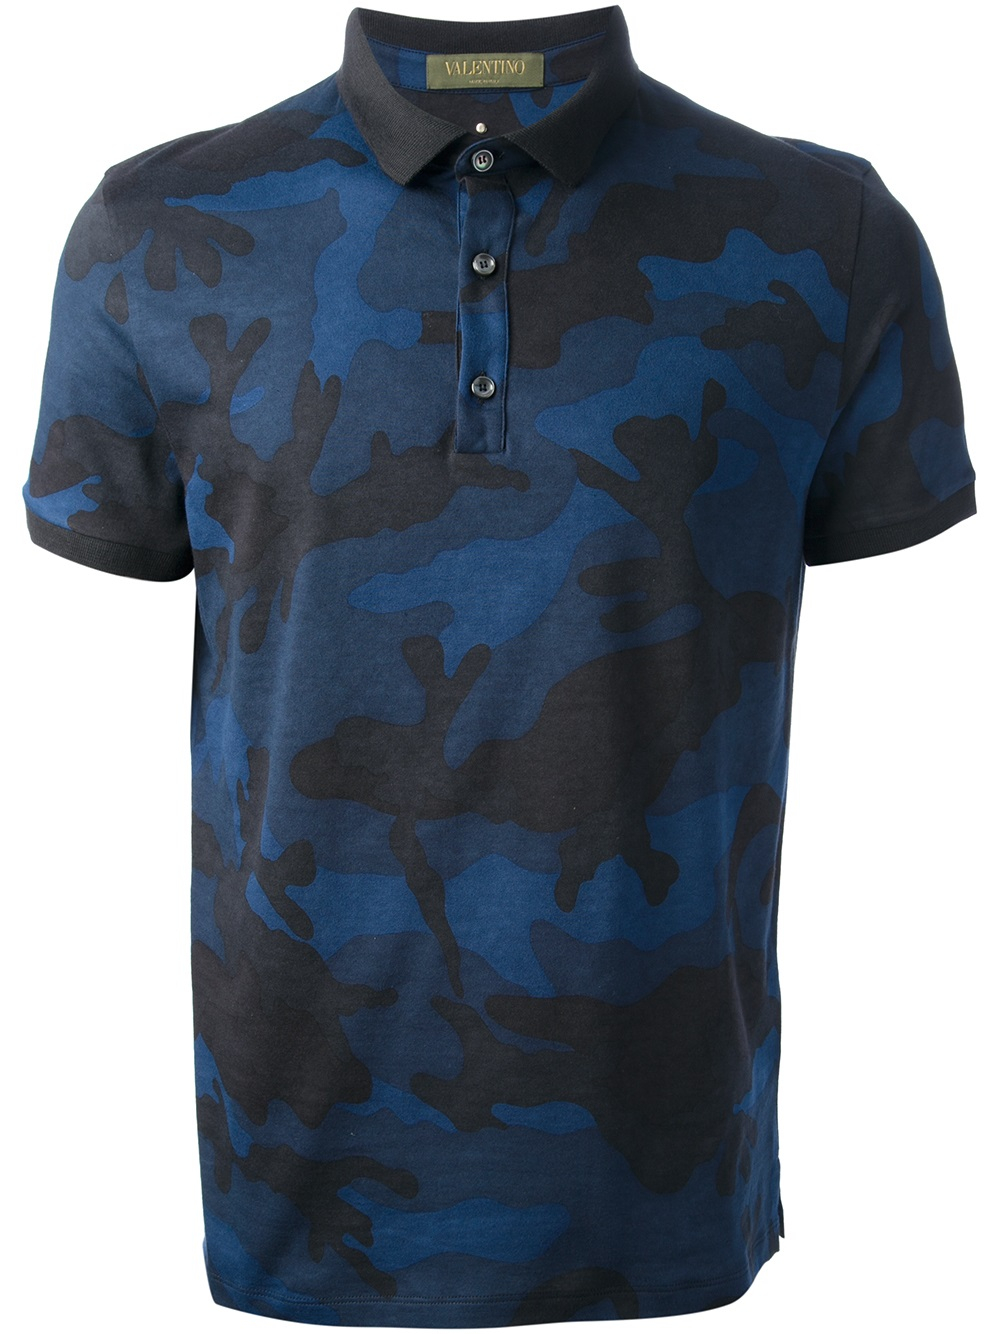 Valentino camouflage polo shirt in blue for men lyst for Camo polo shirts for men